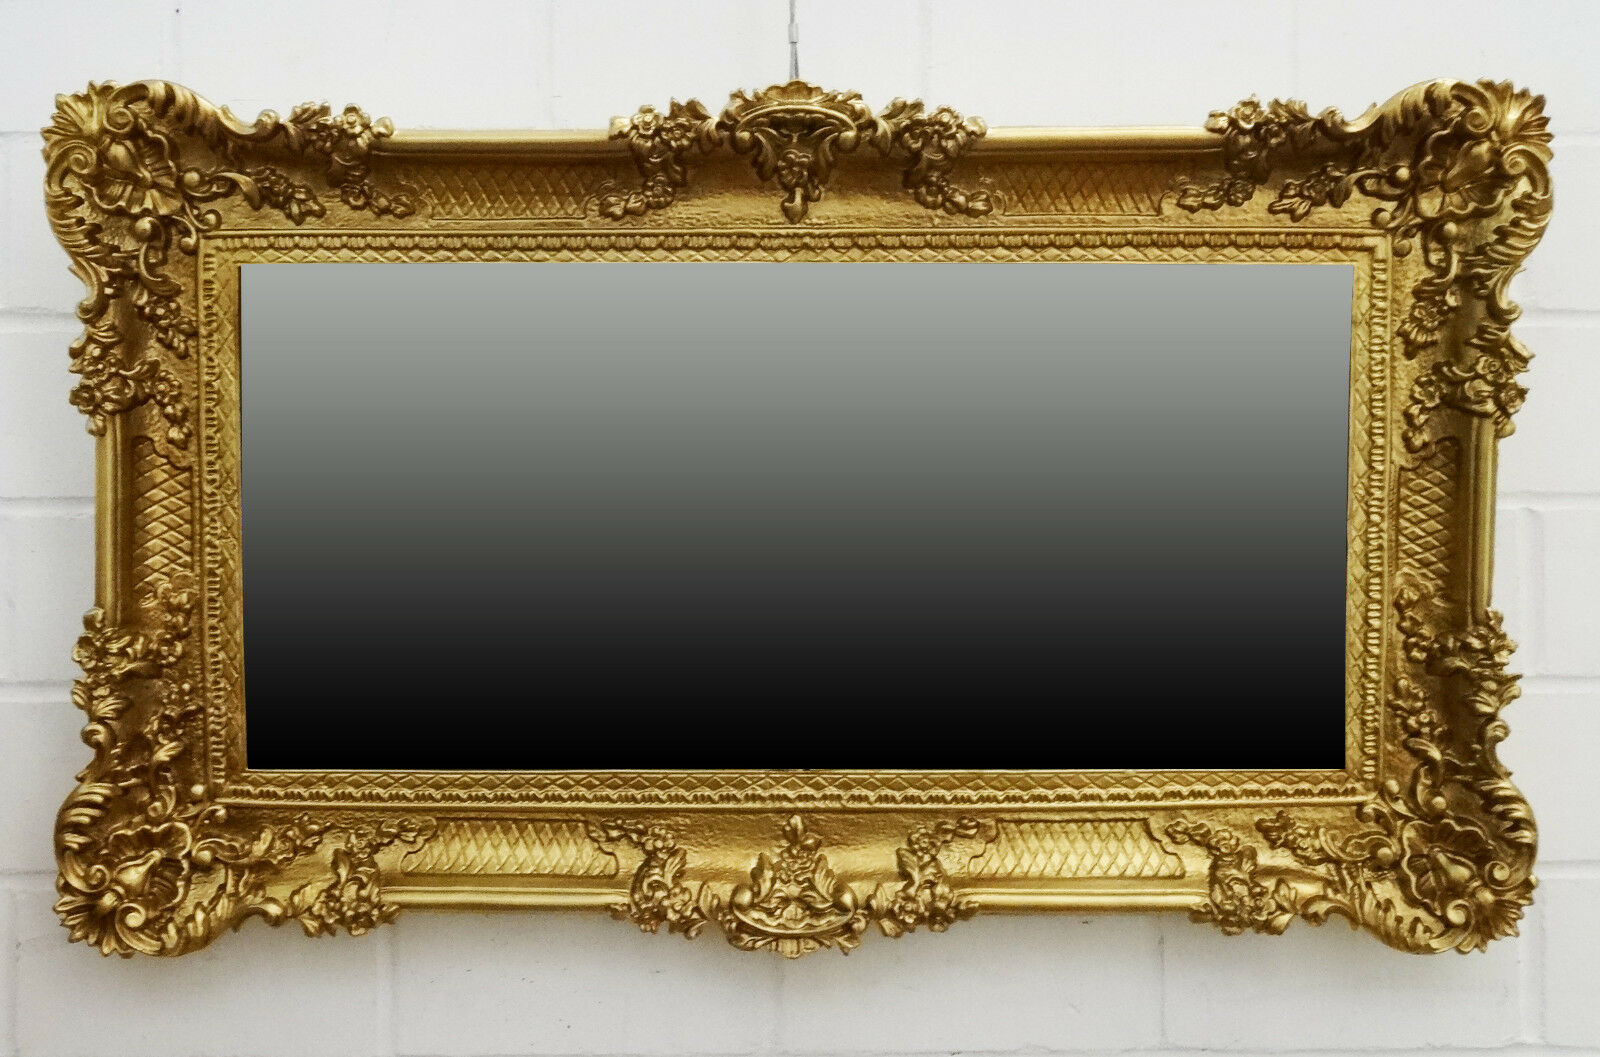 Grand Miroir Mural Miroir Baroque Rectangulaire Antique or Blanc 96x57